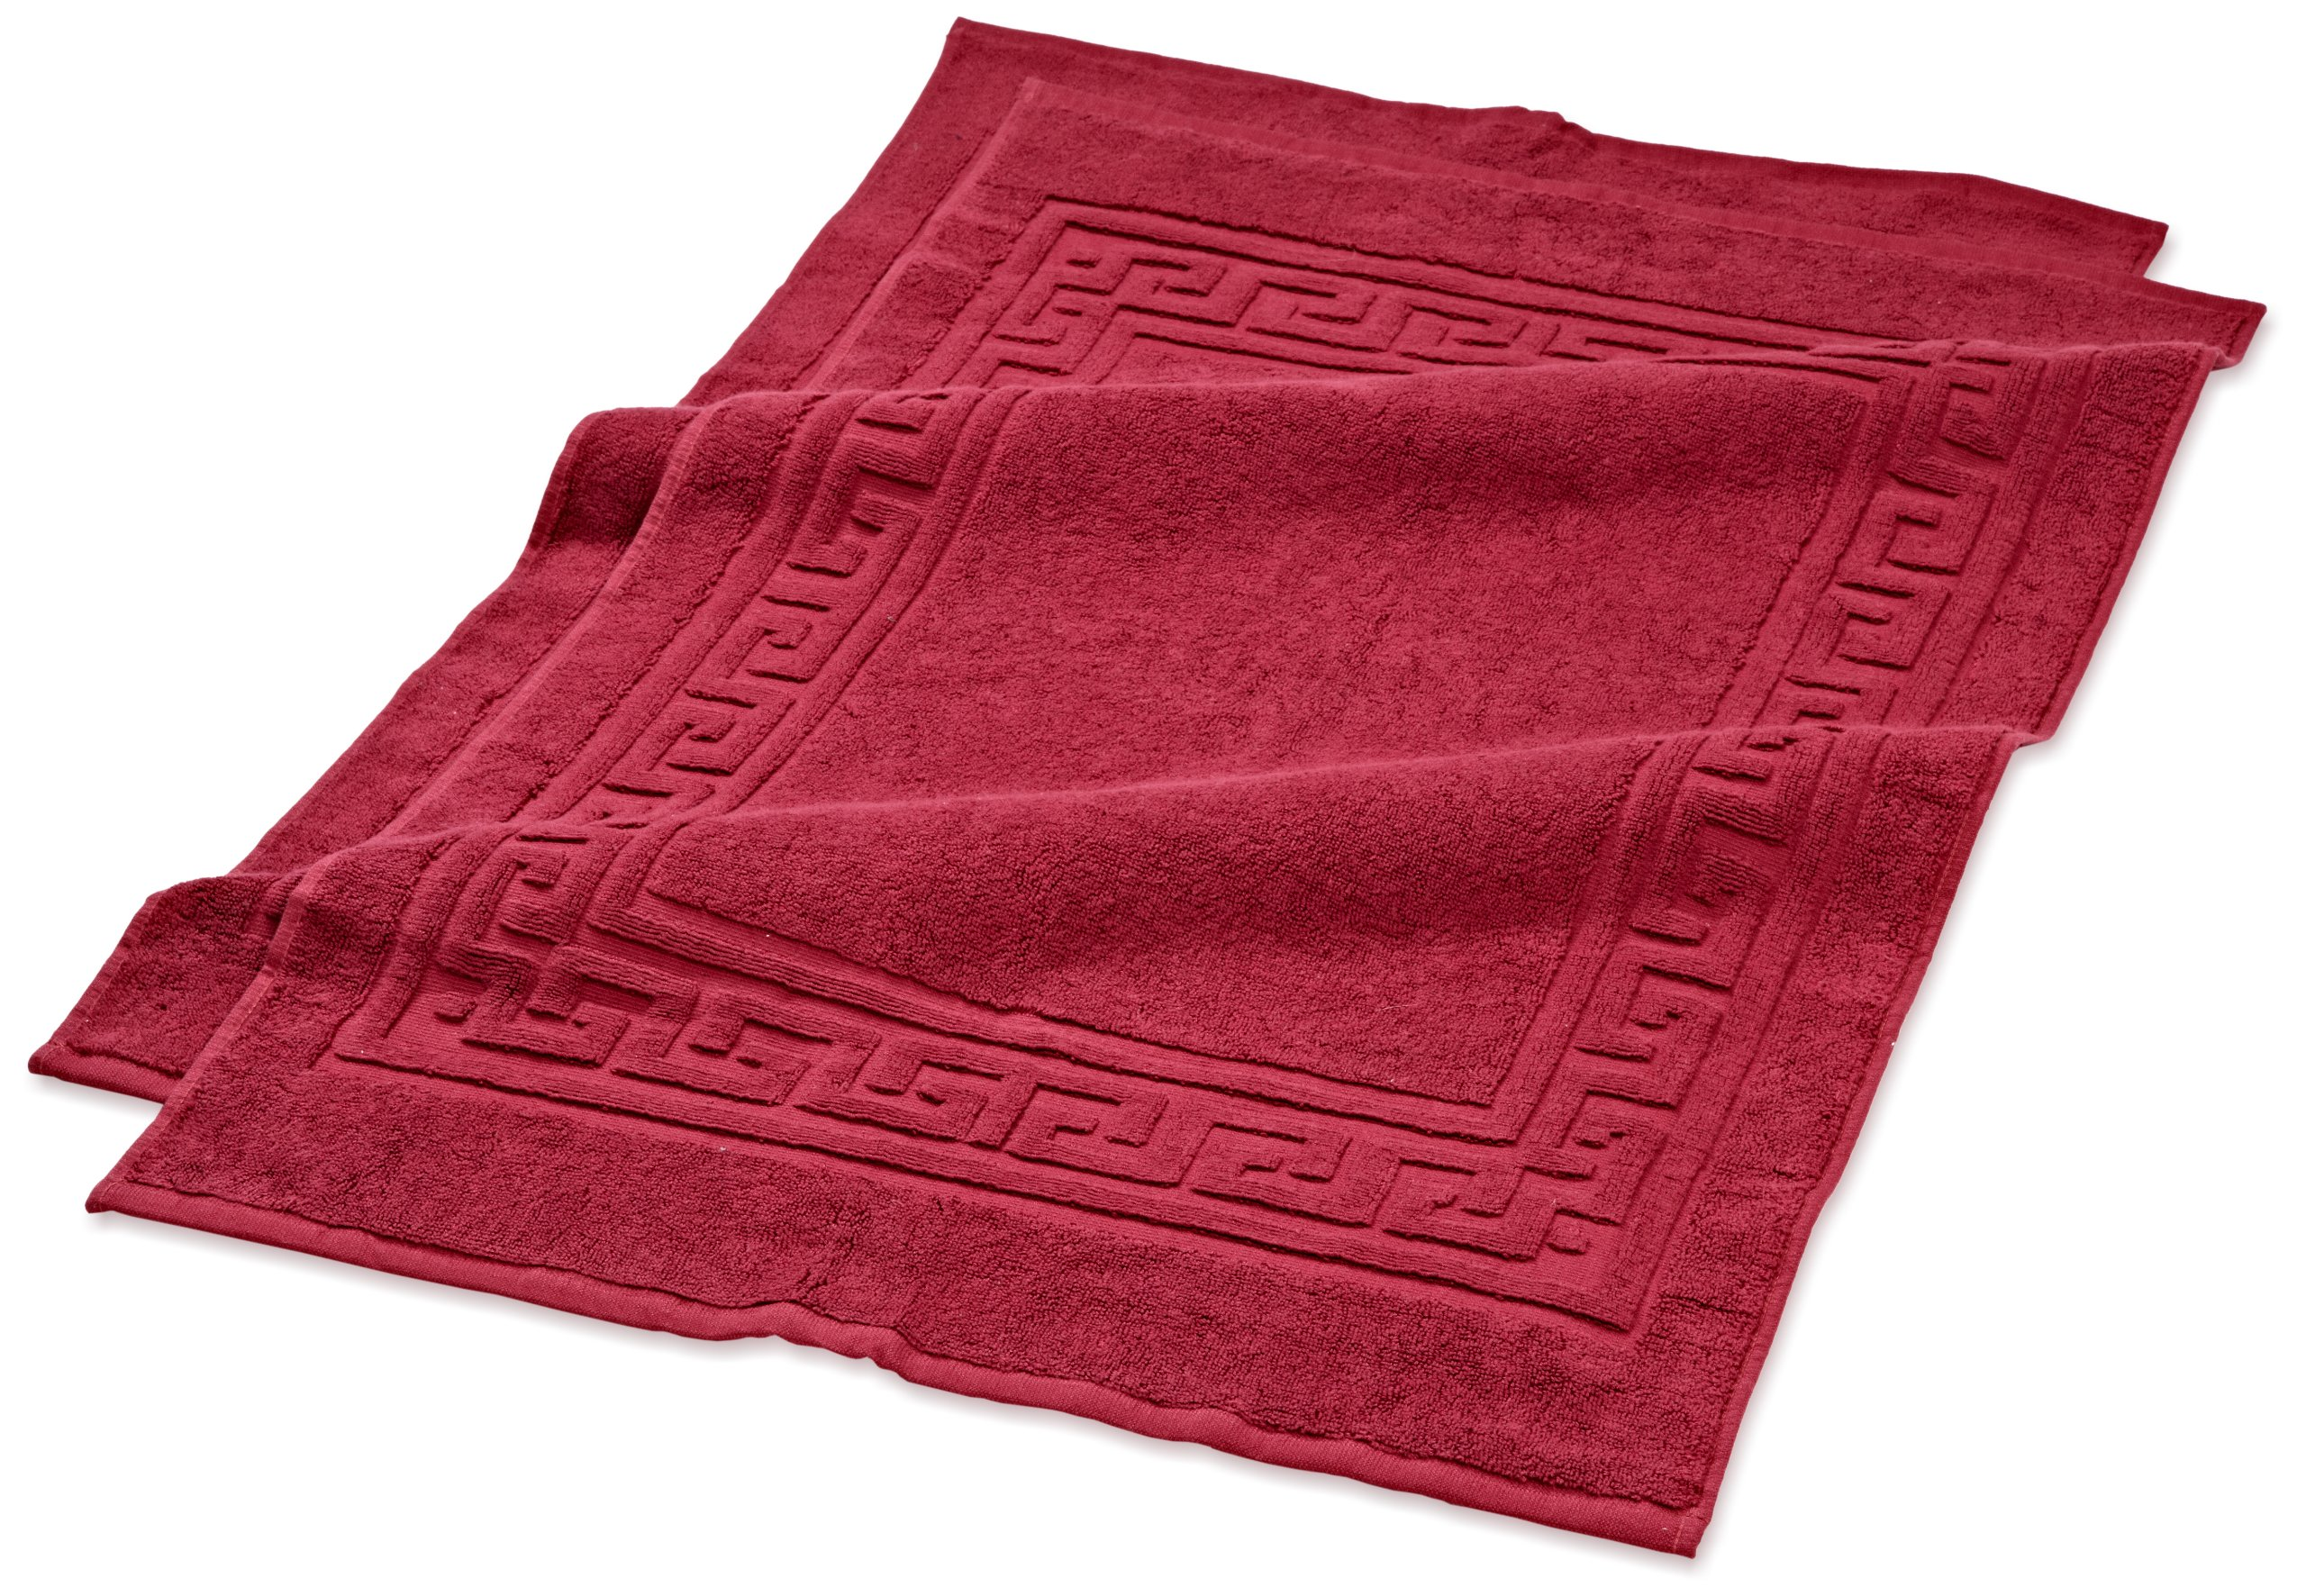 Superior Hotel & Spa Quality Bath Mat Set of 2, Made of 100% Premium Long-Staple Combed Cotton, Durable and Washable Bathroom Mat 2-Pack - Burgundy, 22'' x 35'' each